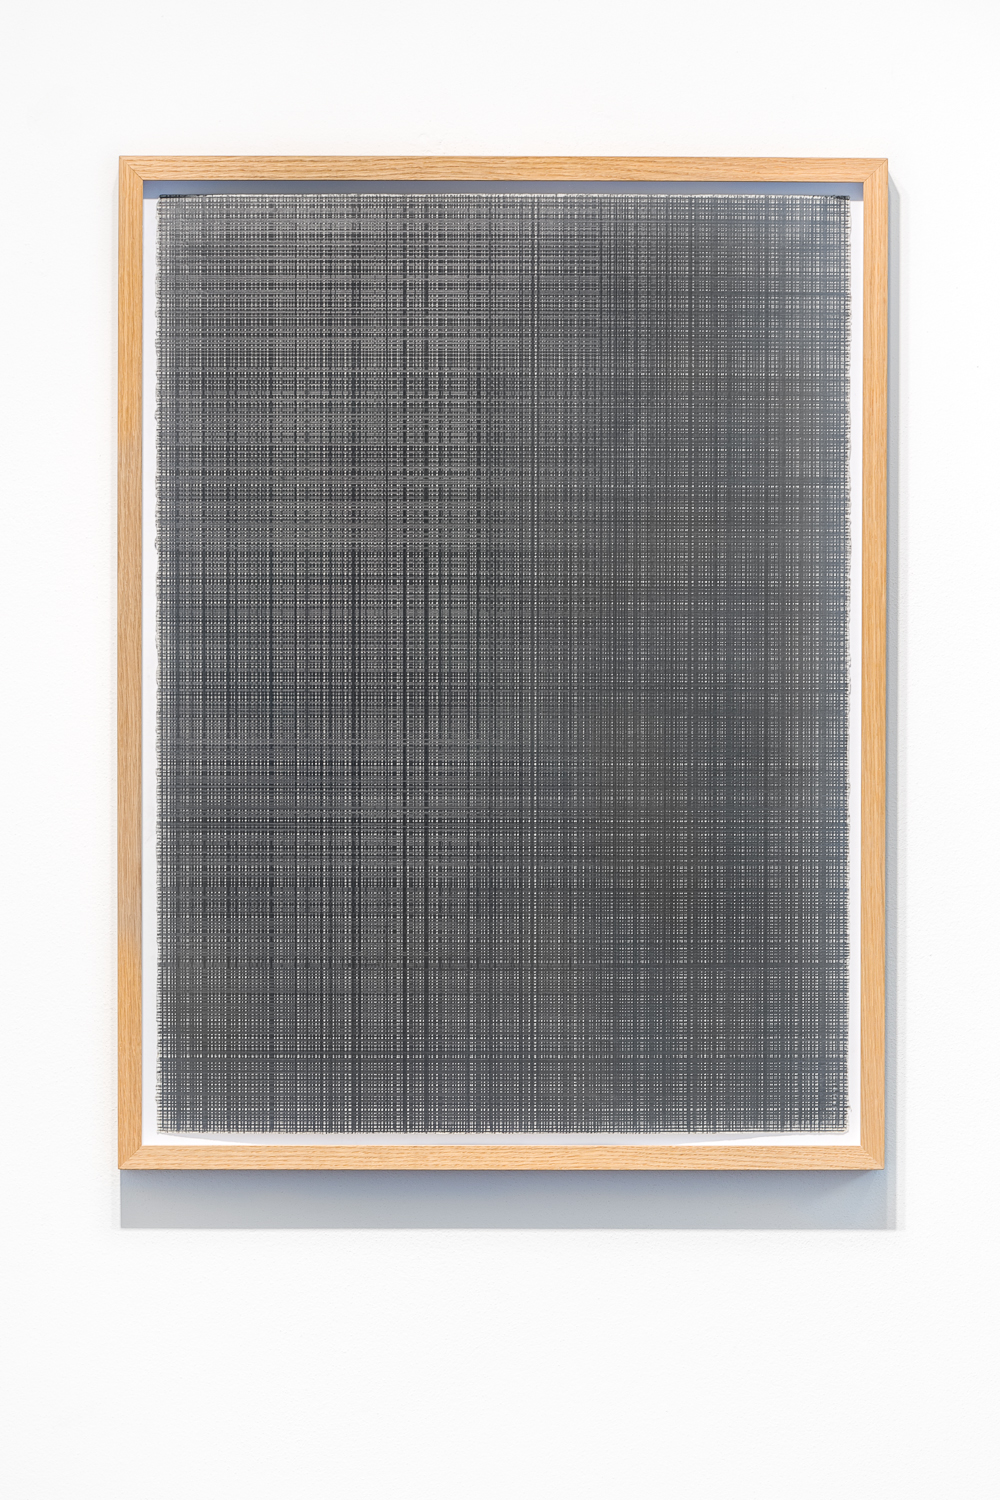 Installation view by Akira Arita, Untitled, 51 x 36,5 cm, pencil on paper, 2005